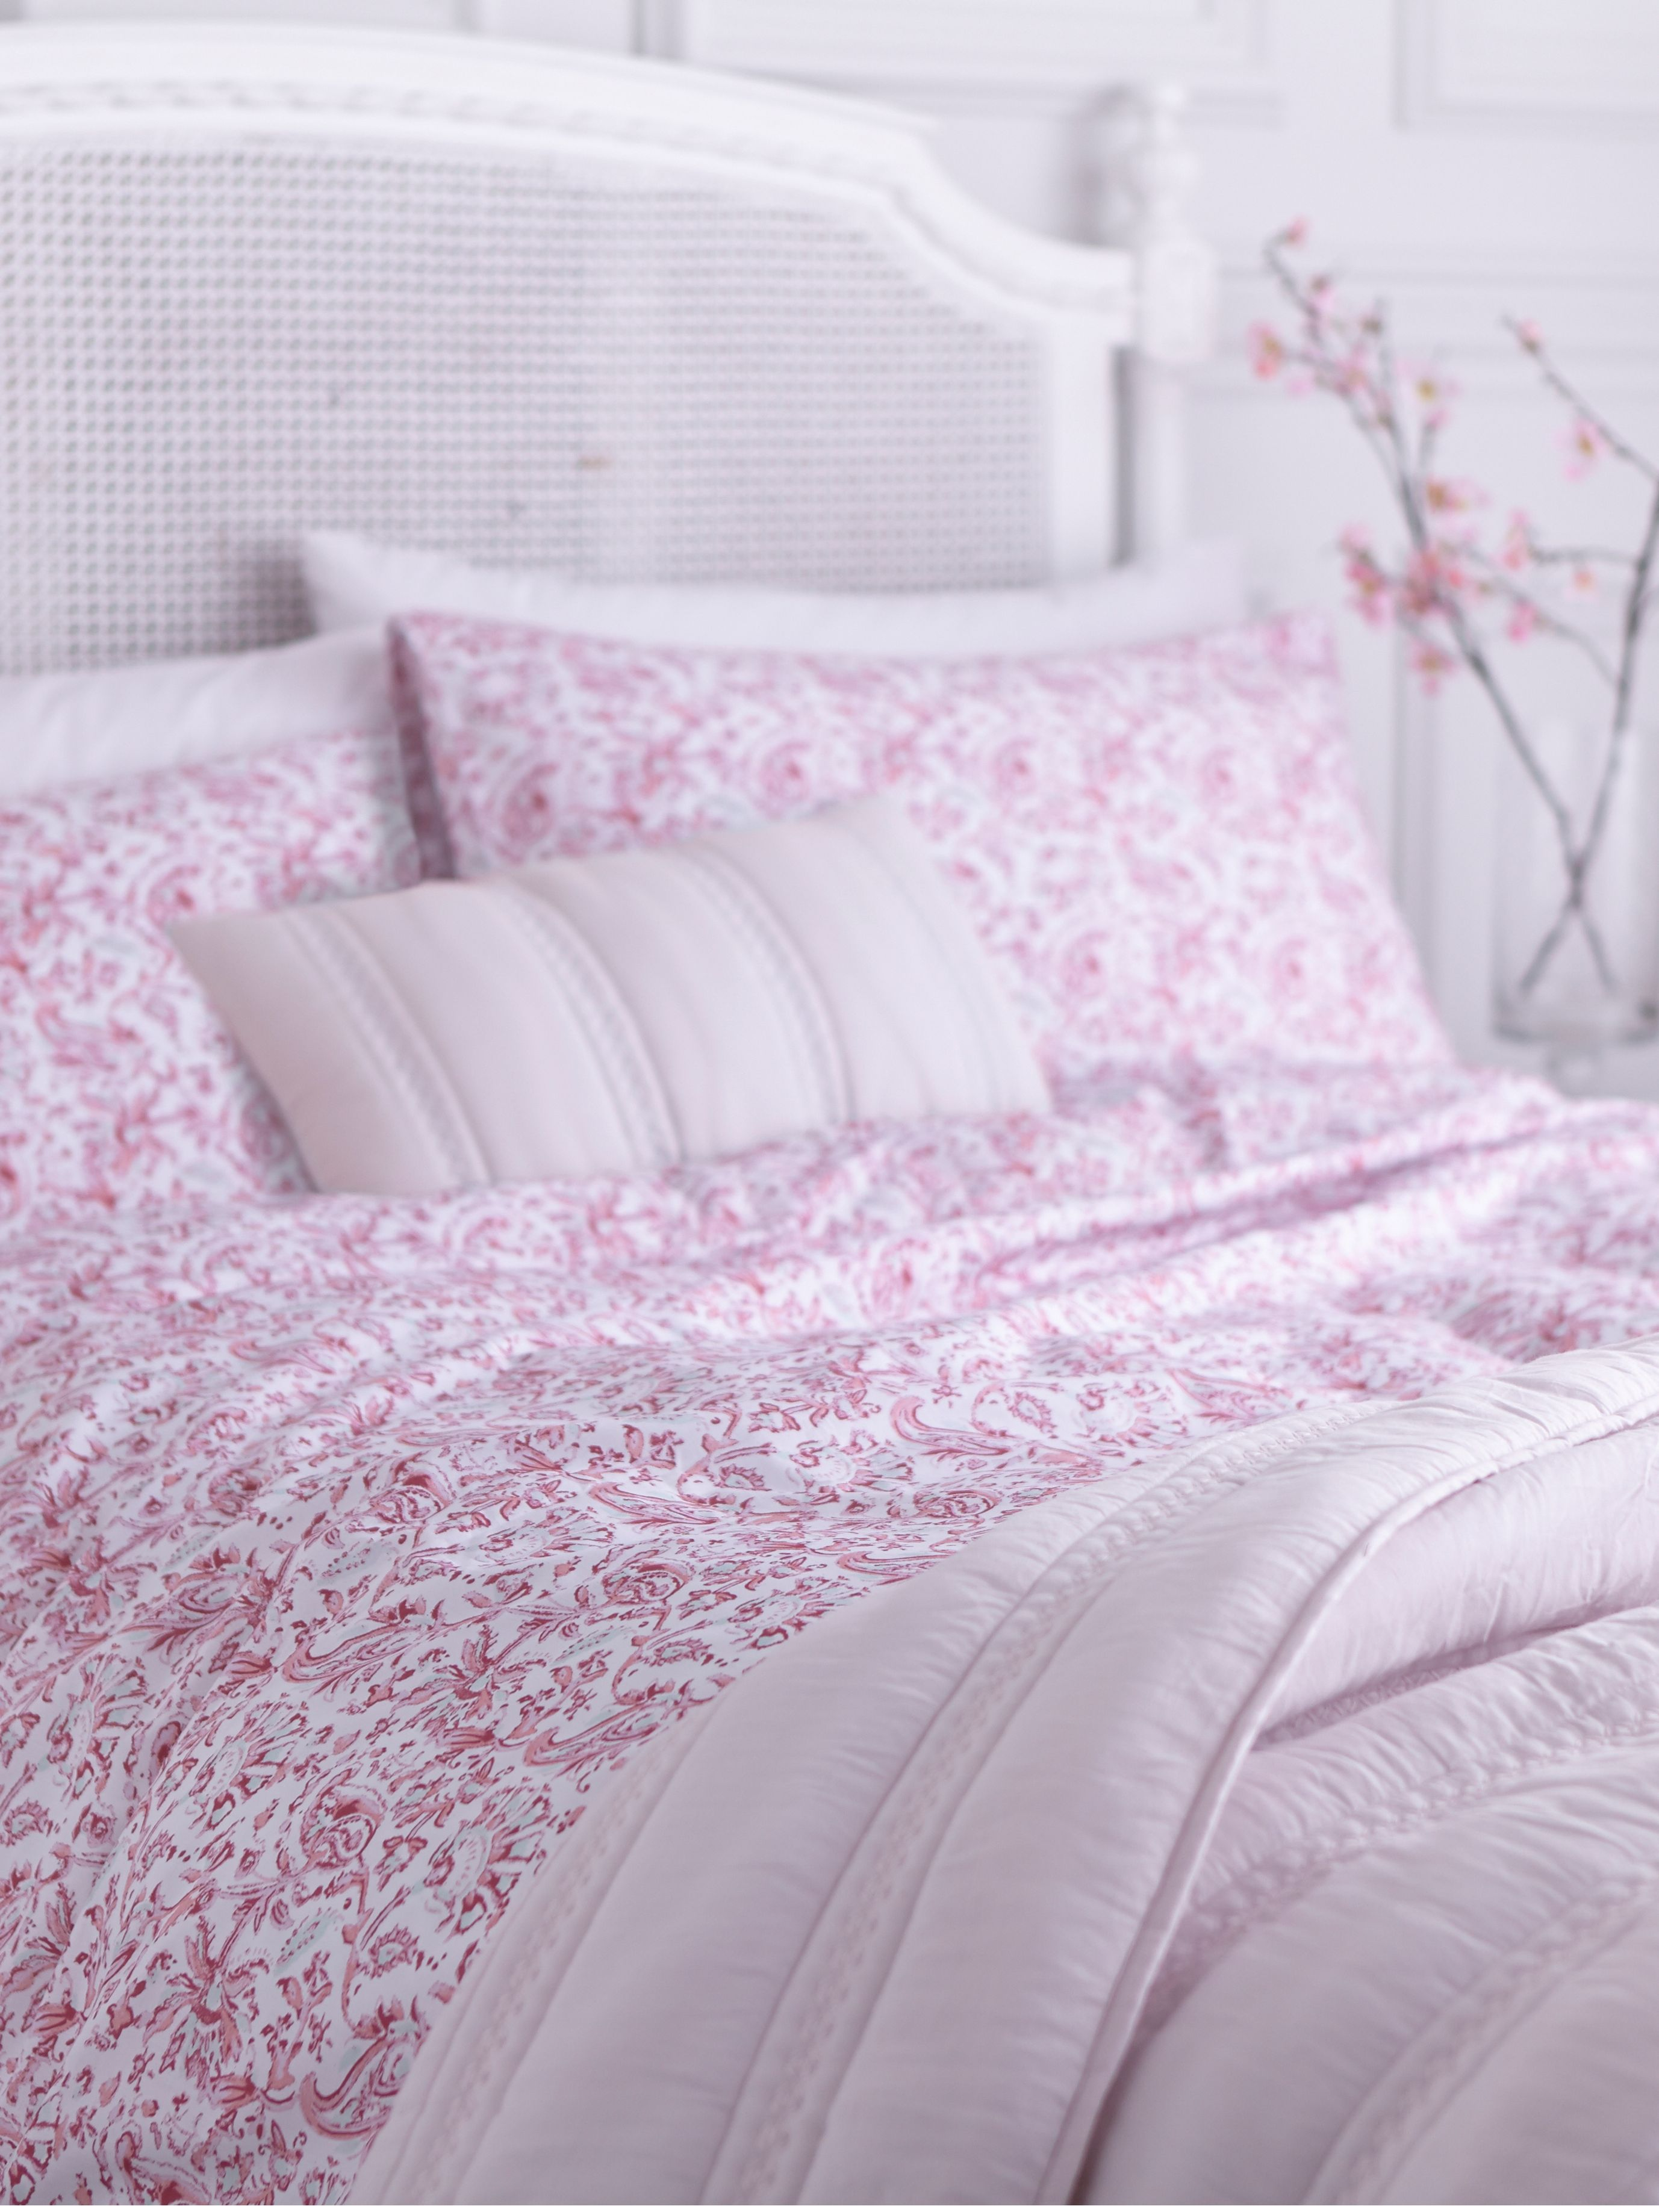 Indes floral super king duvet cover